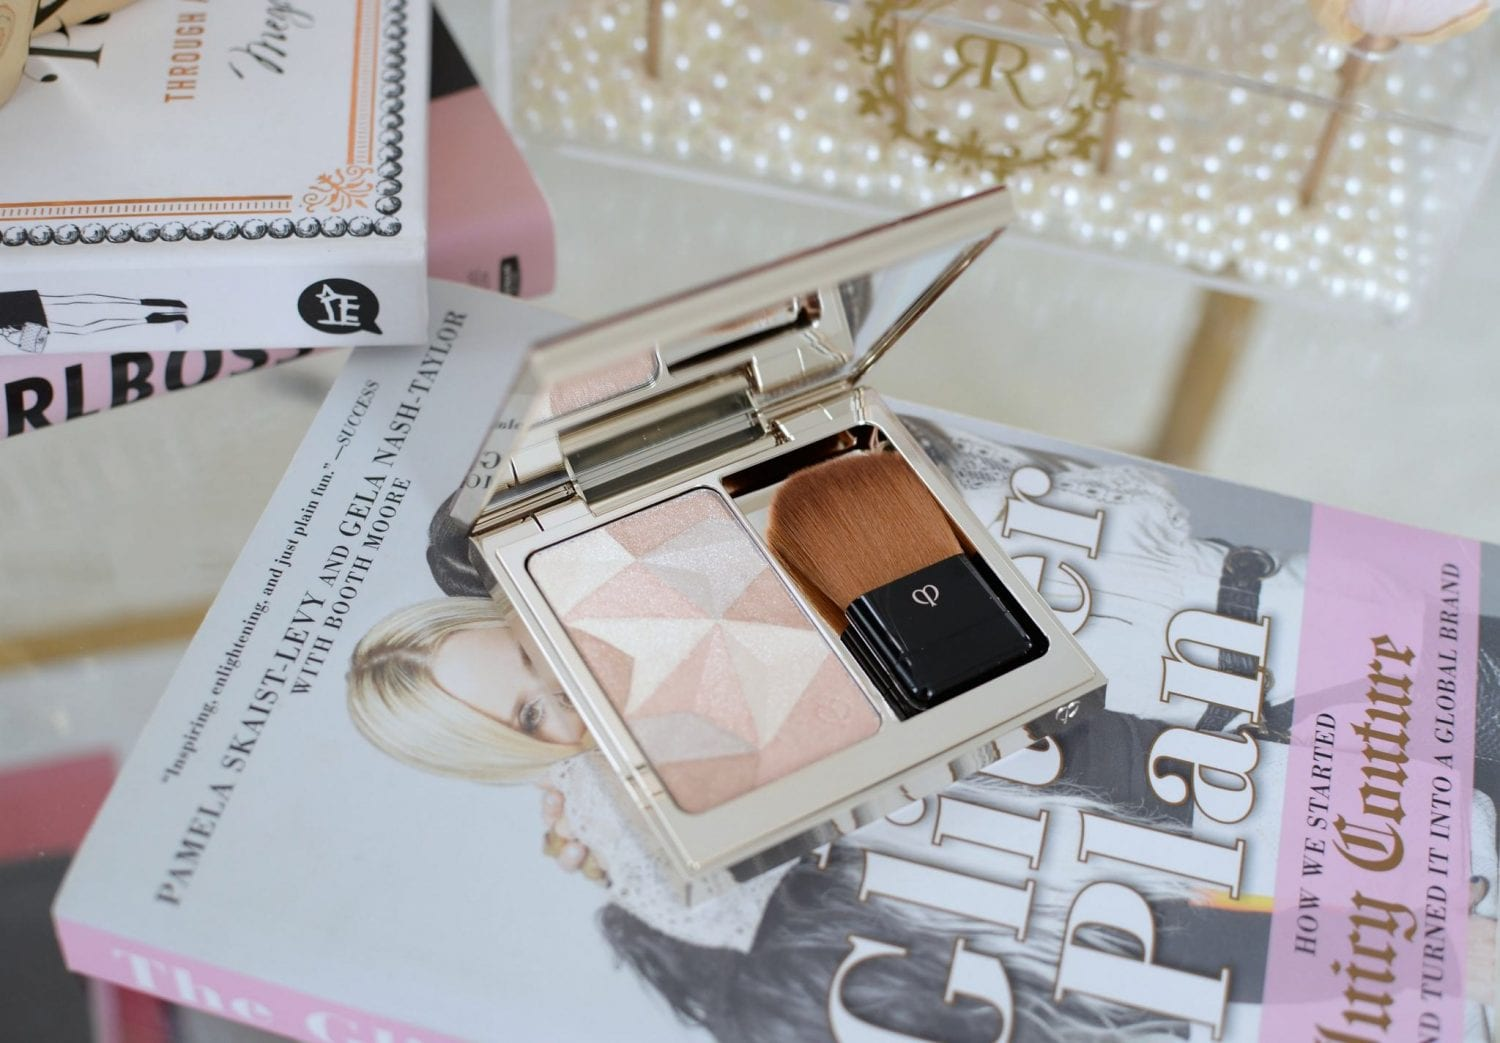 Luminizing Face Enhancer from Clé de Peau | The Pink Millennial